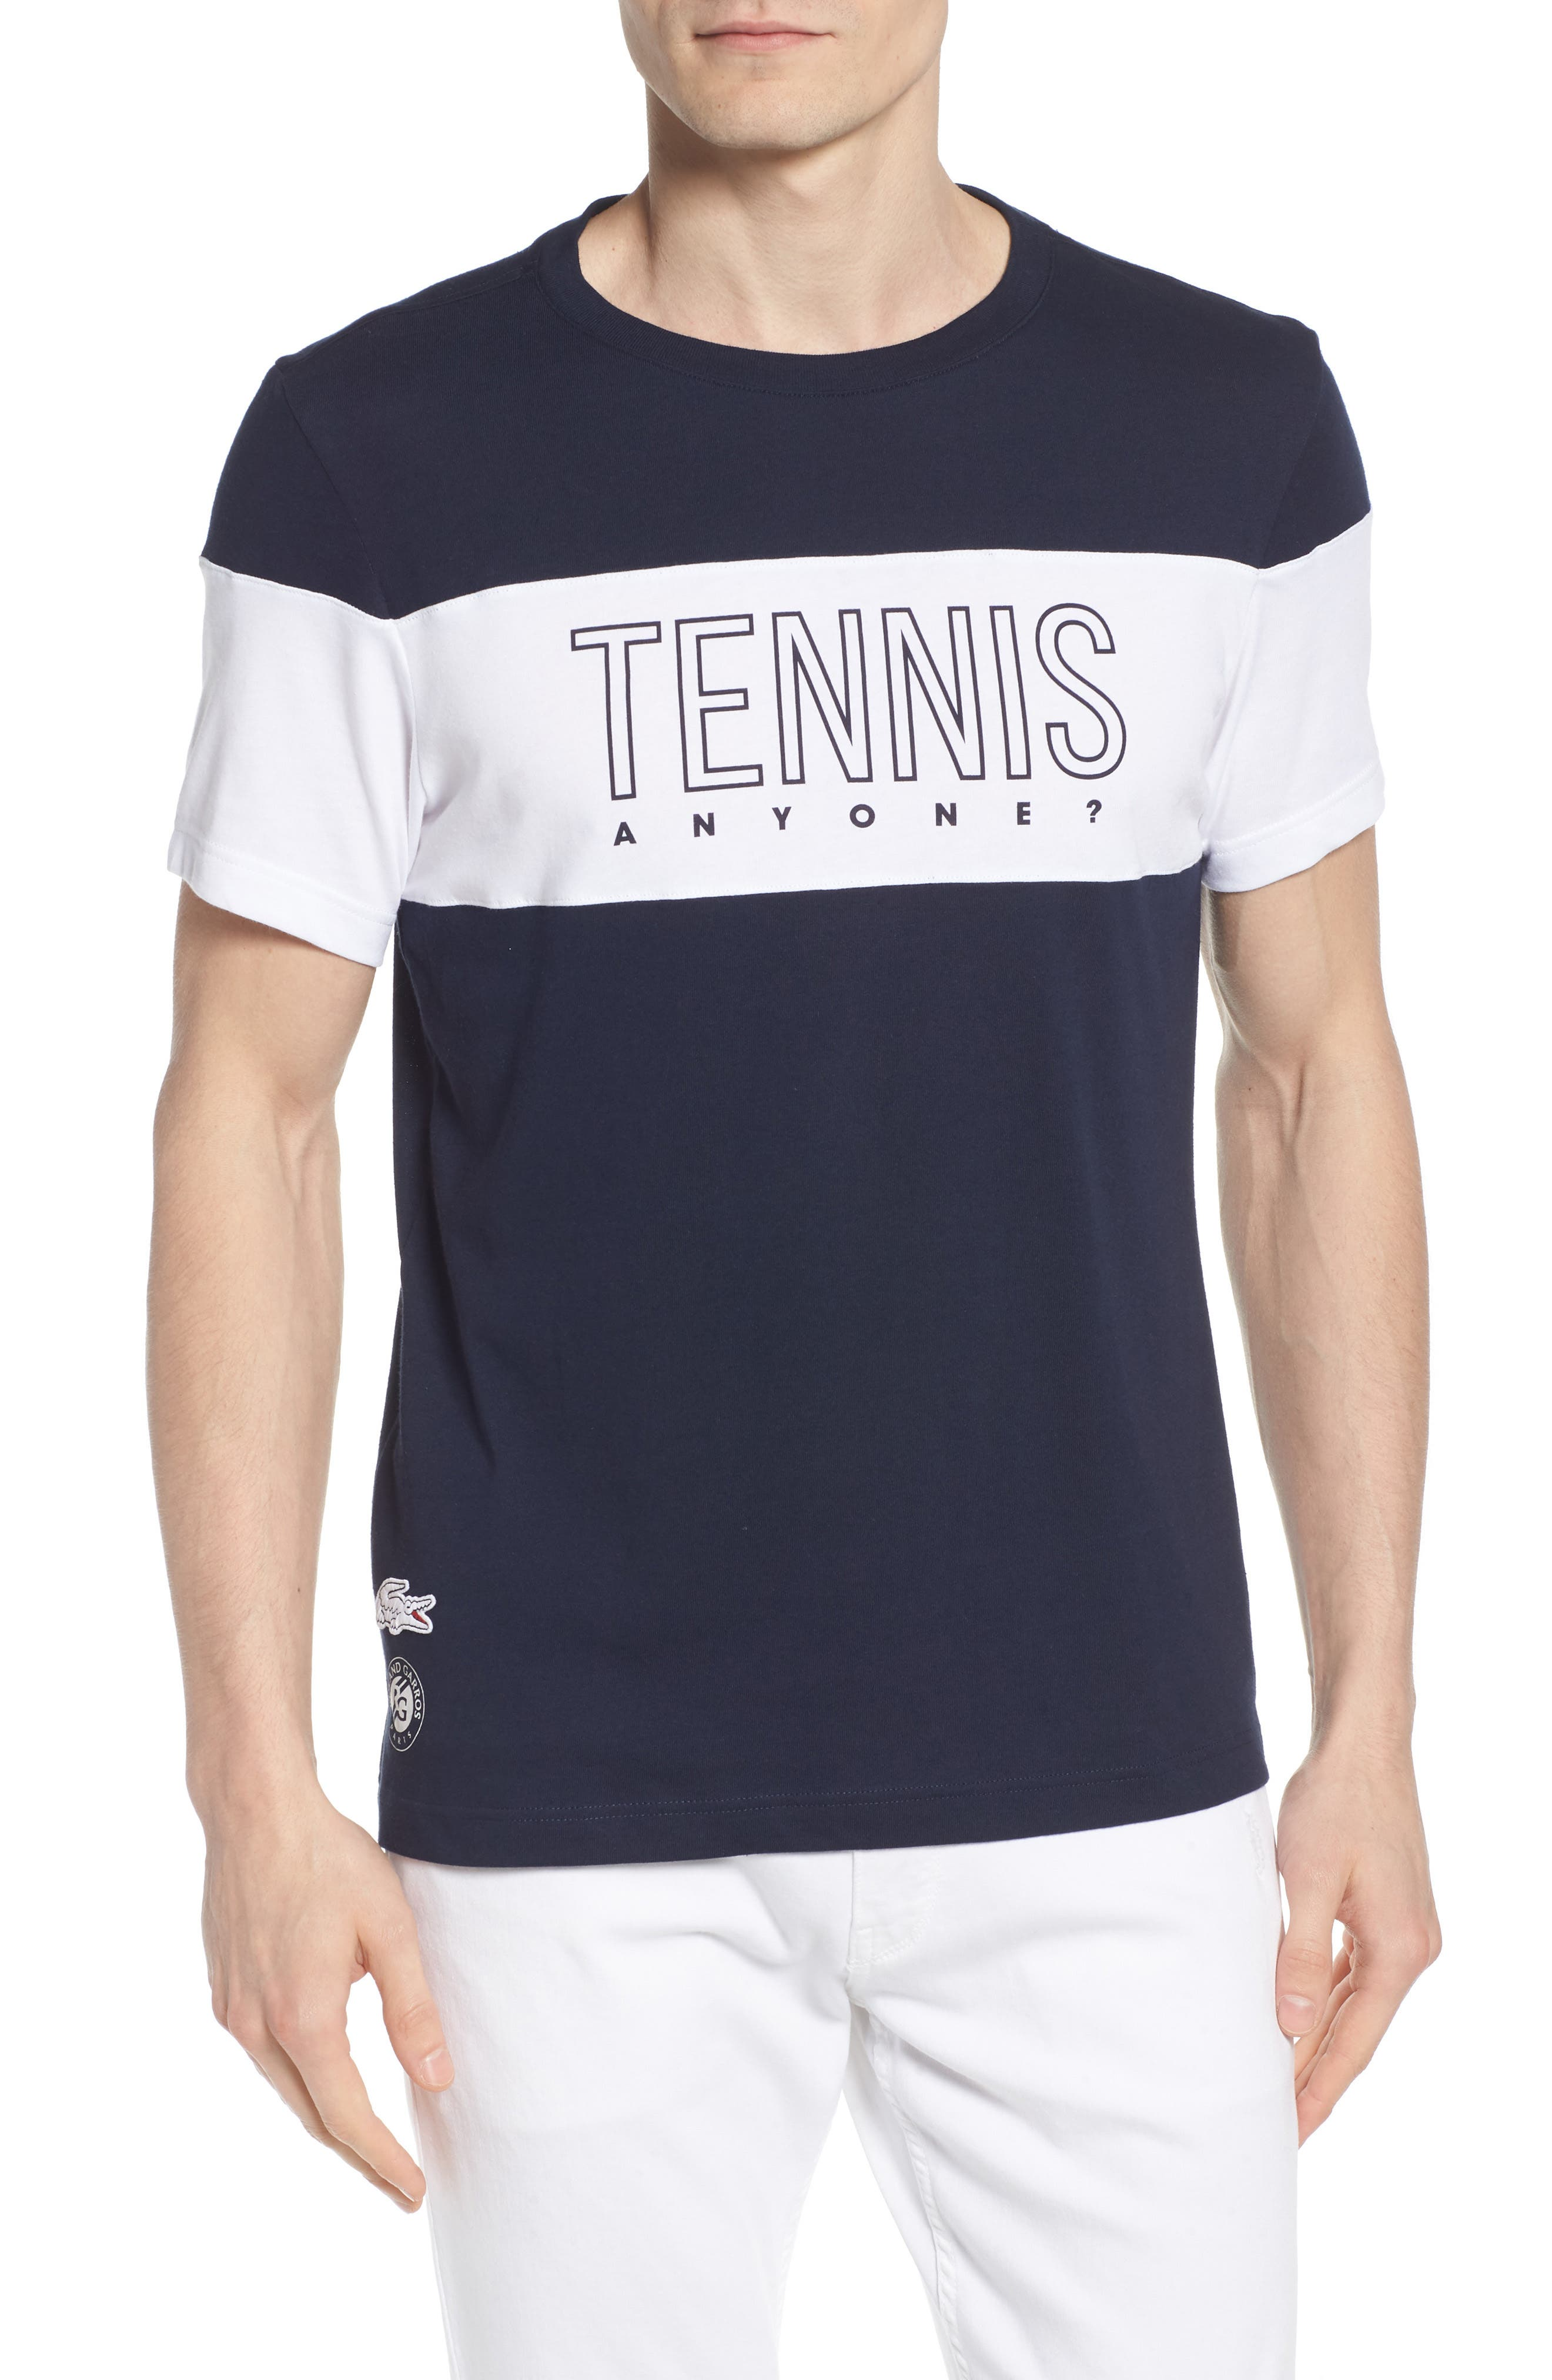 Tennis Anyone Tech Jersey T-Shirt,                             Main thumbnail 1, color,                             Navy Blue/ White